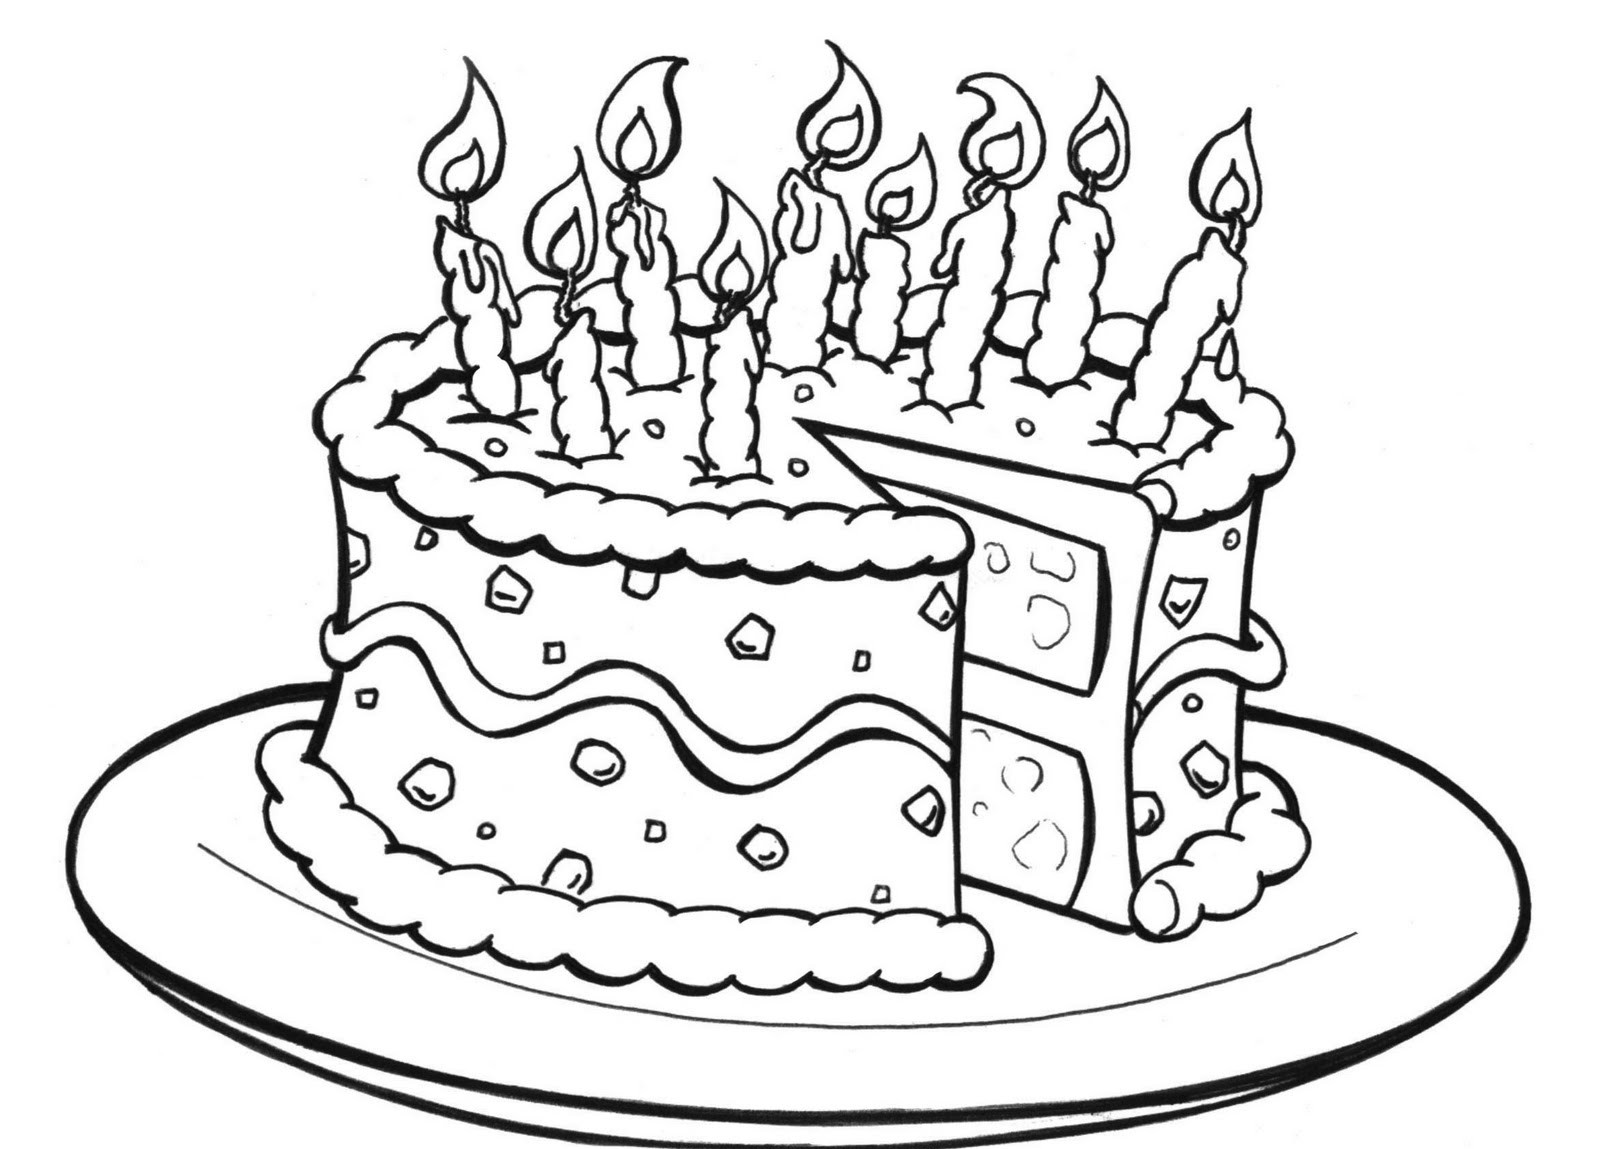 birthday cake pictures to color free free printable birthday cake coloring pages for kids color free birthday to cake pictures